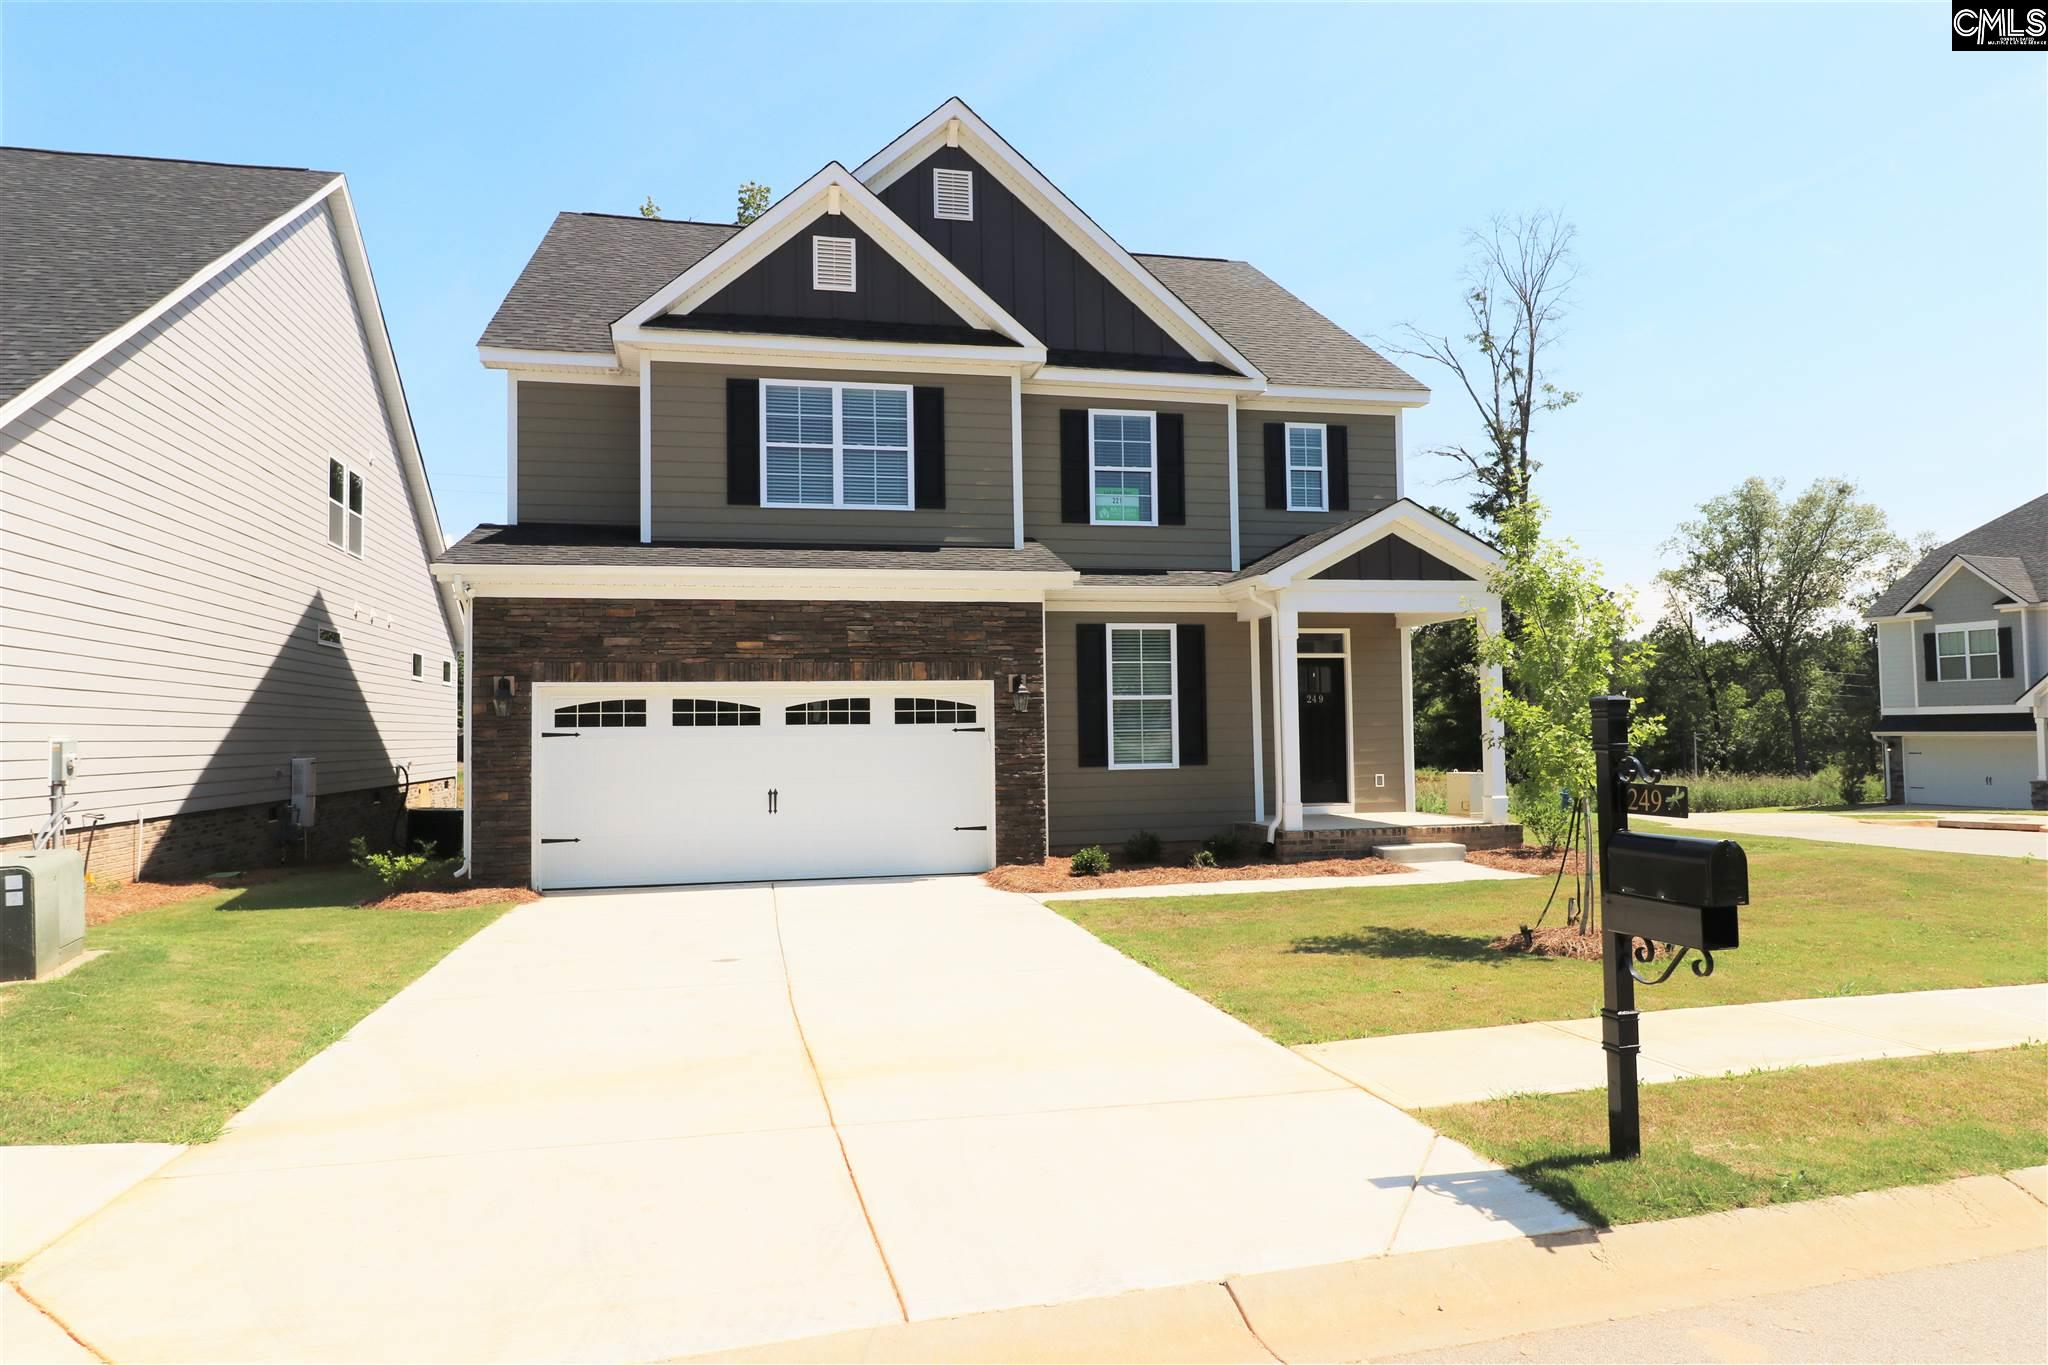 249 Garden Gate Lexington, SC 29072